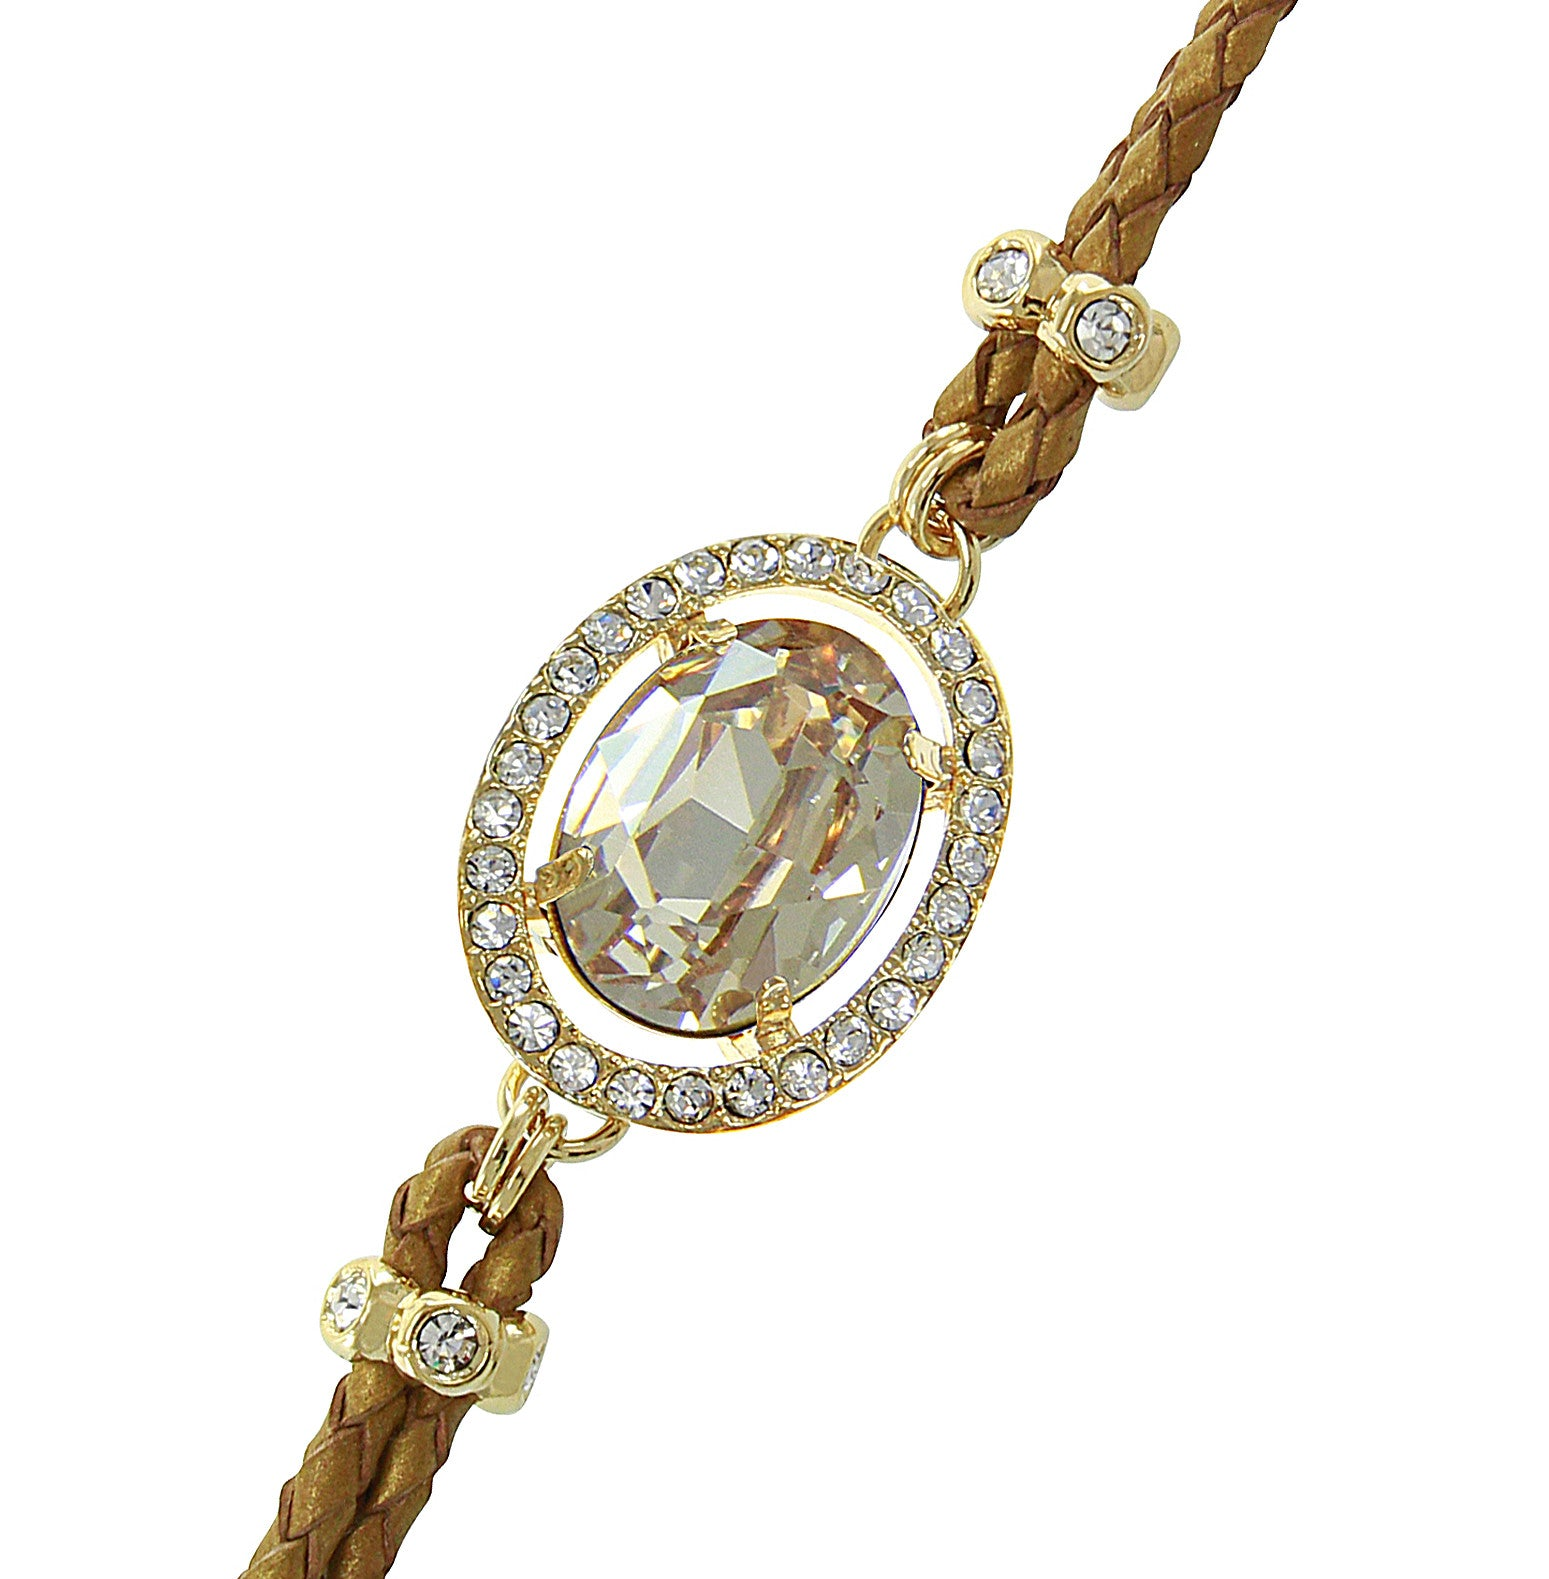 Champagne Center Crystal and Braided Genuine Leather Toggle Bracele